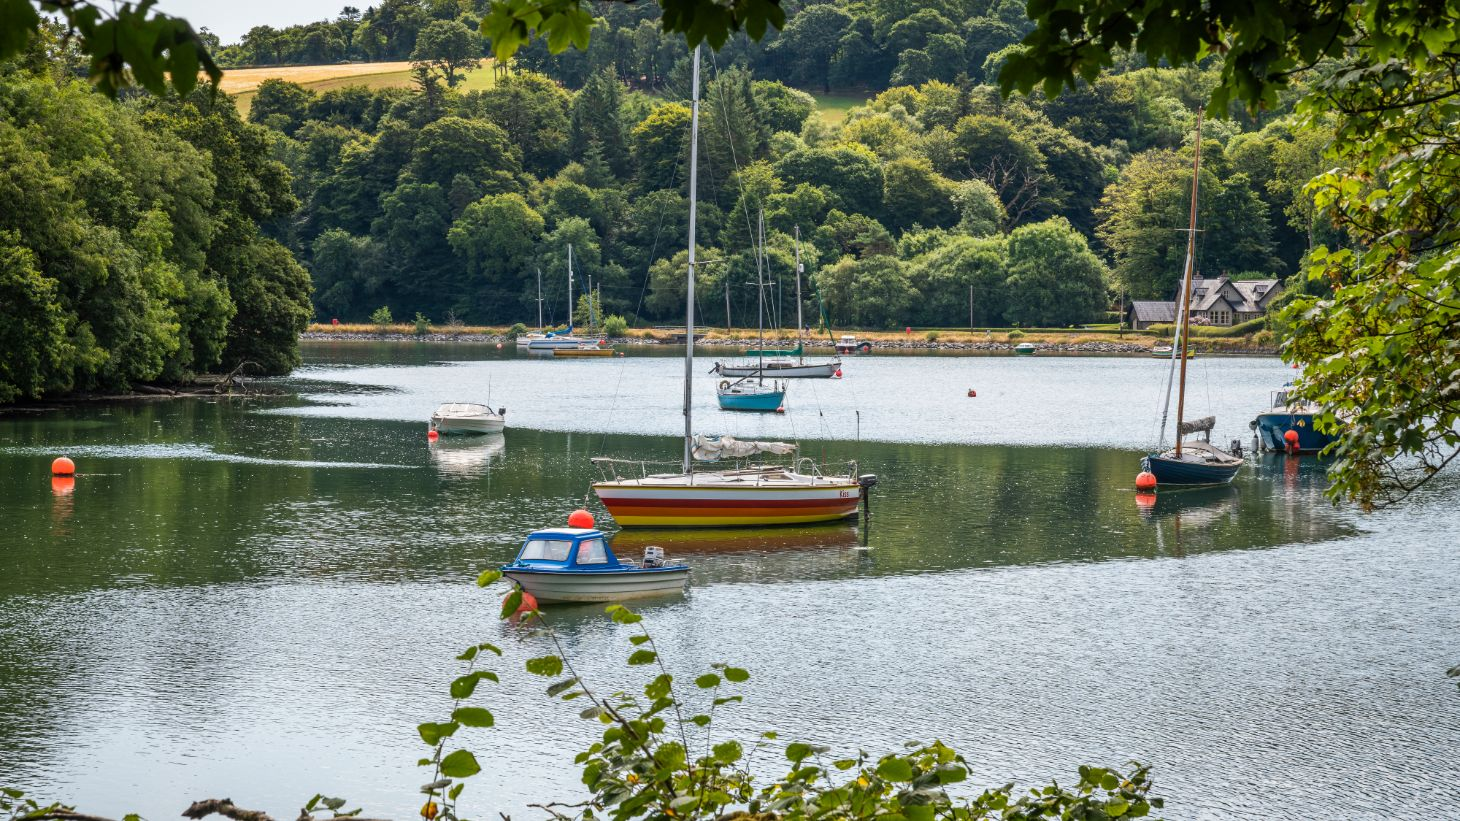 Walk the scenic route from Carrigaline to Crosshaven.